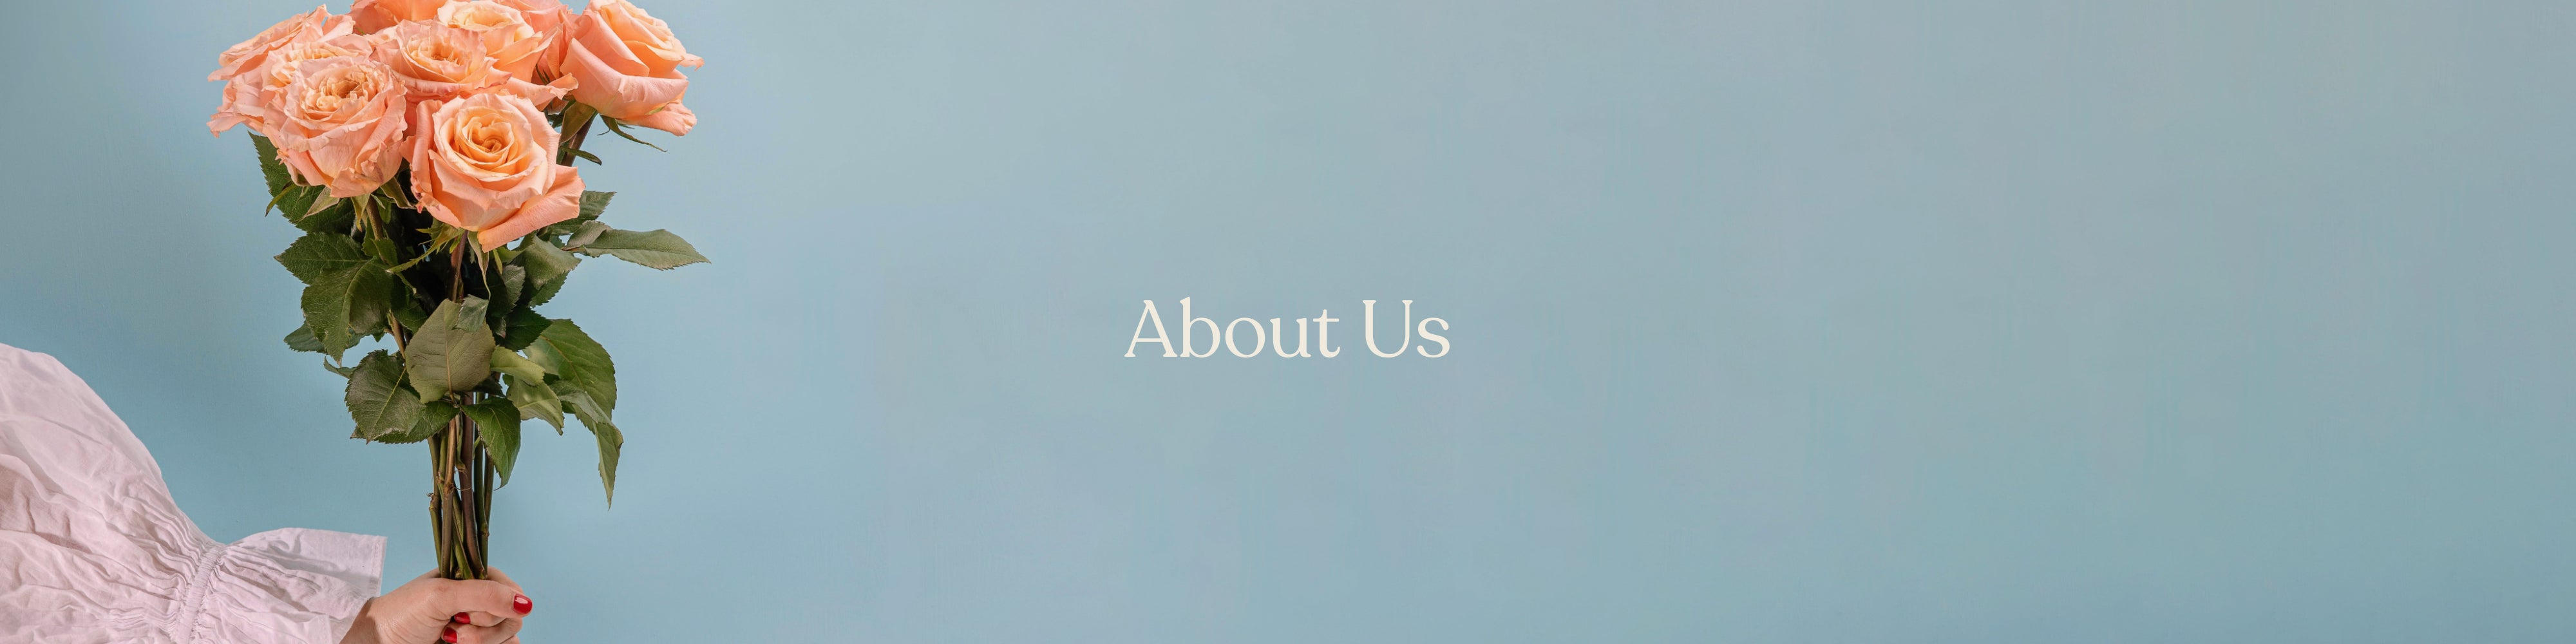 page-banner